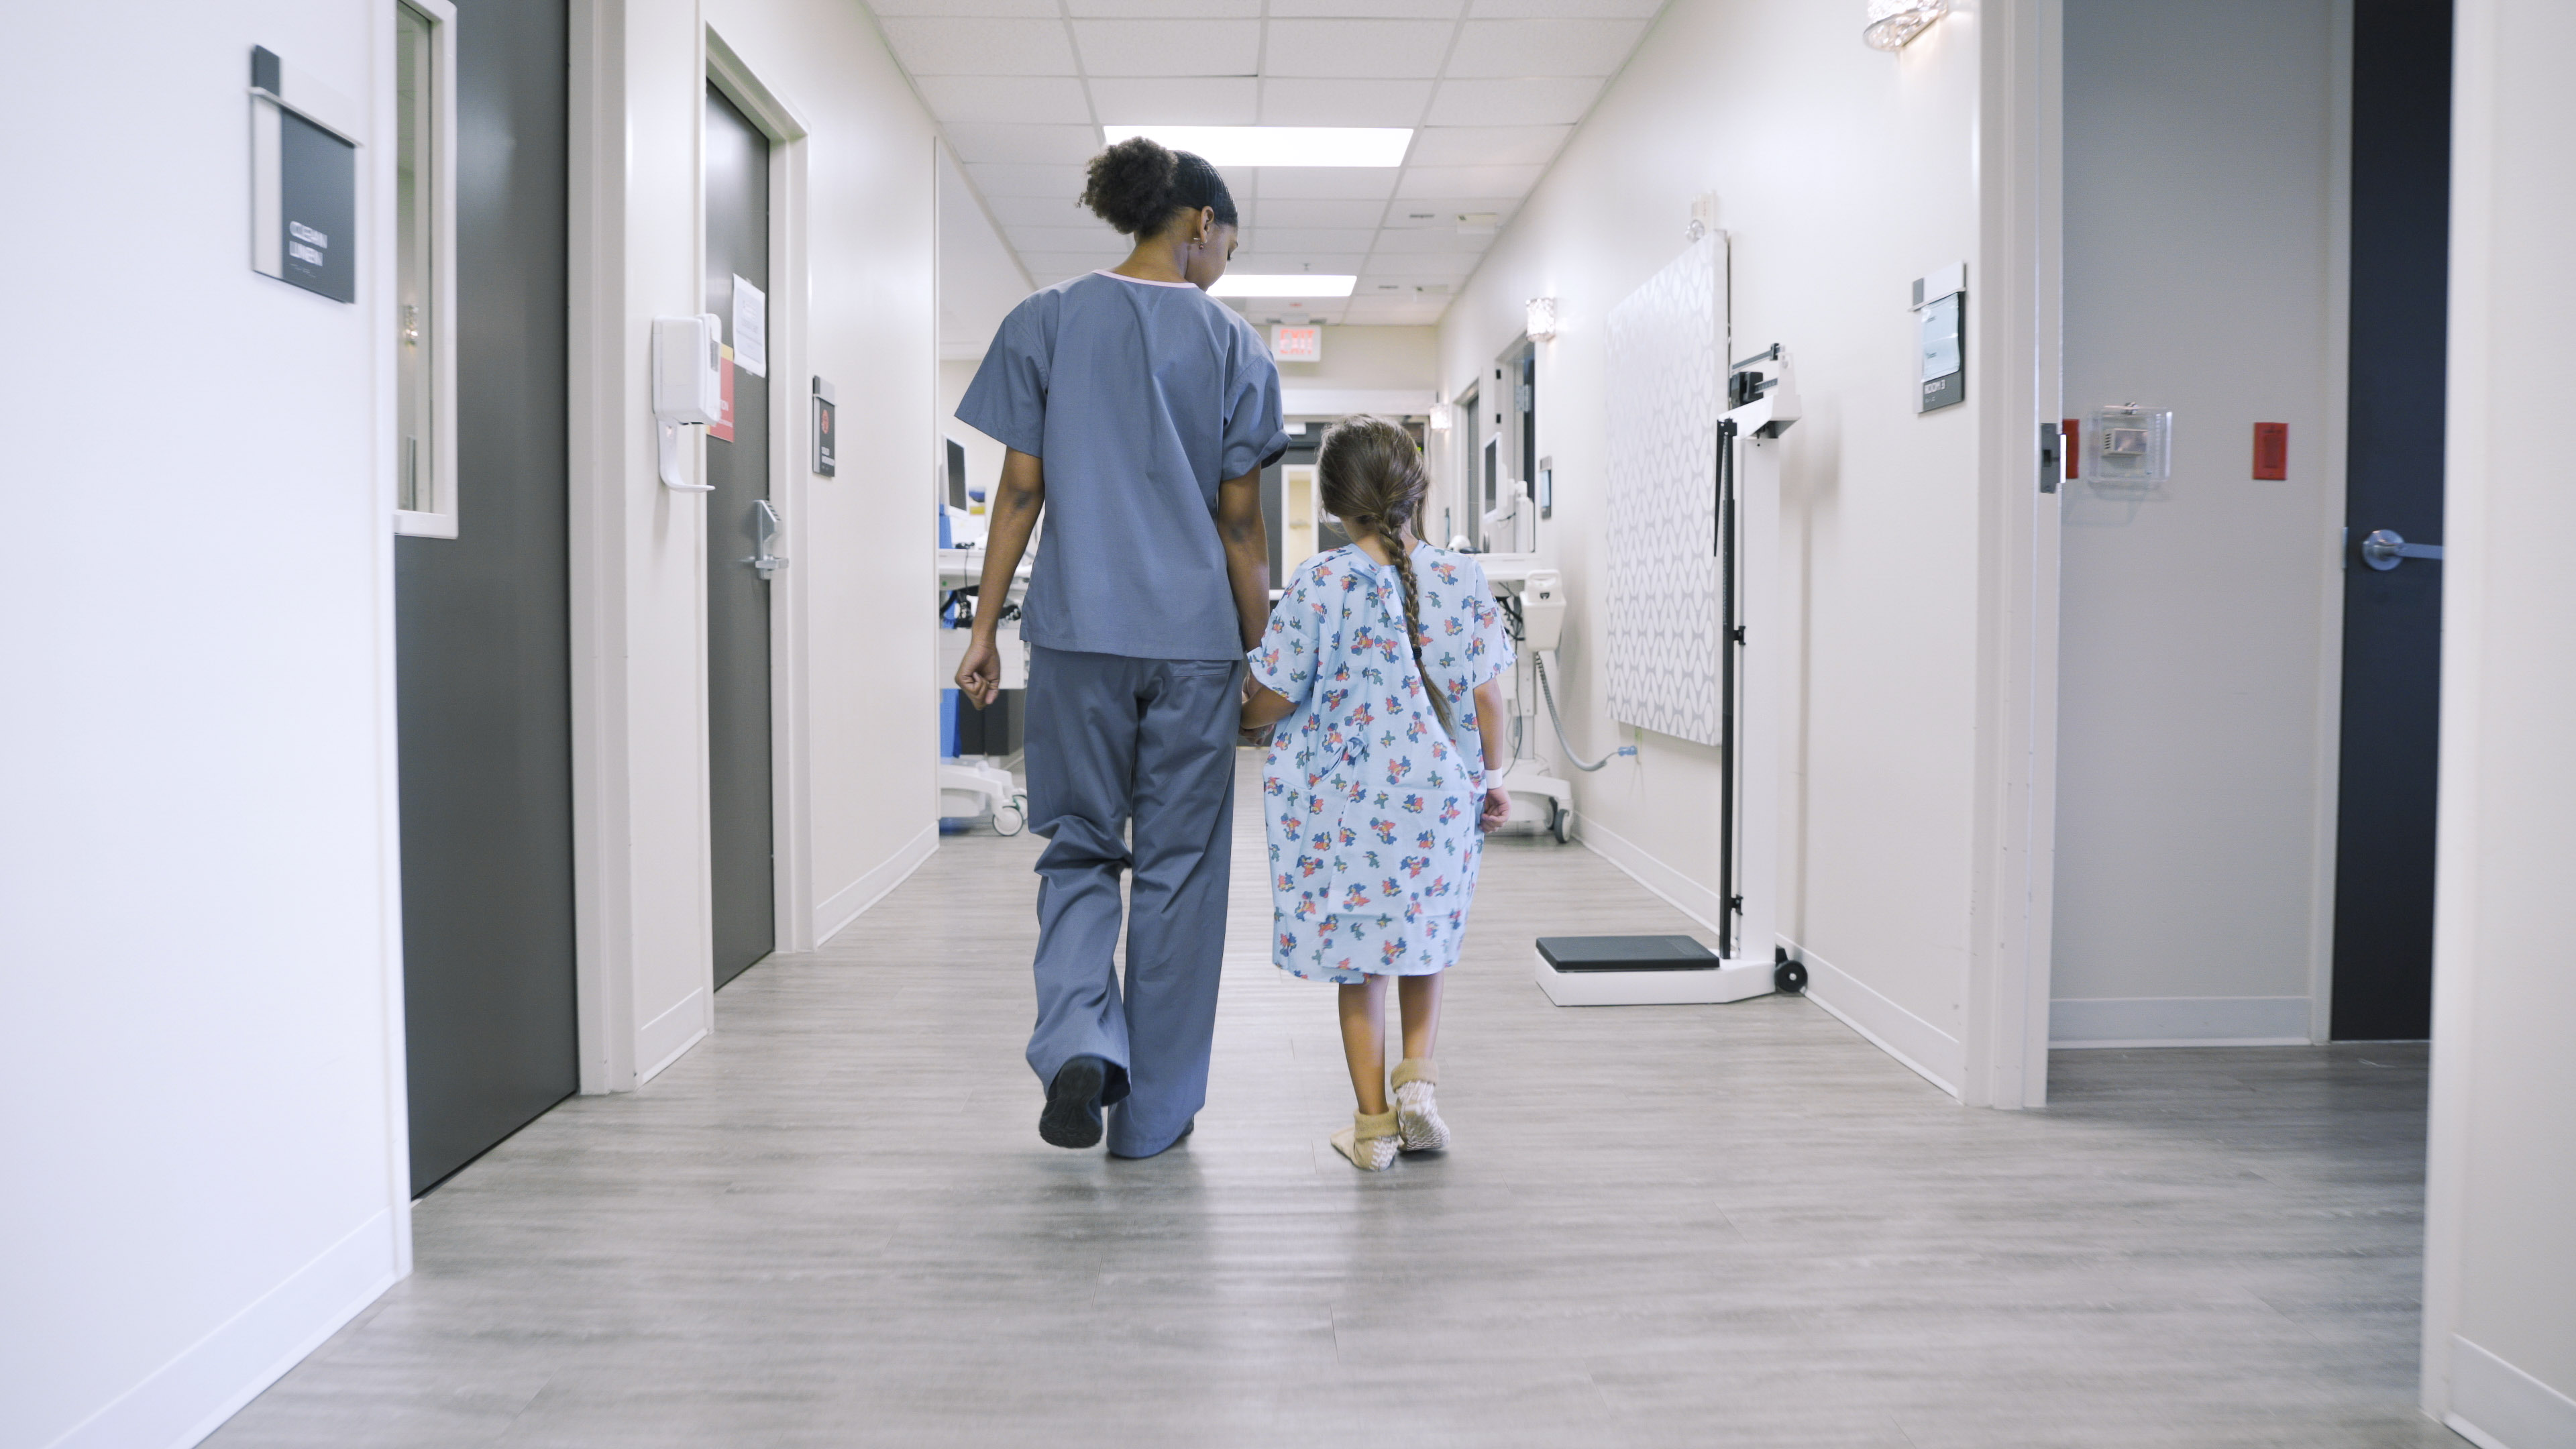 Nurse Holding  Hands with Child